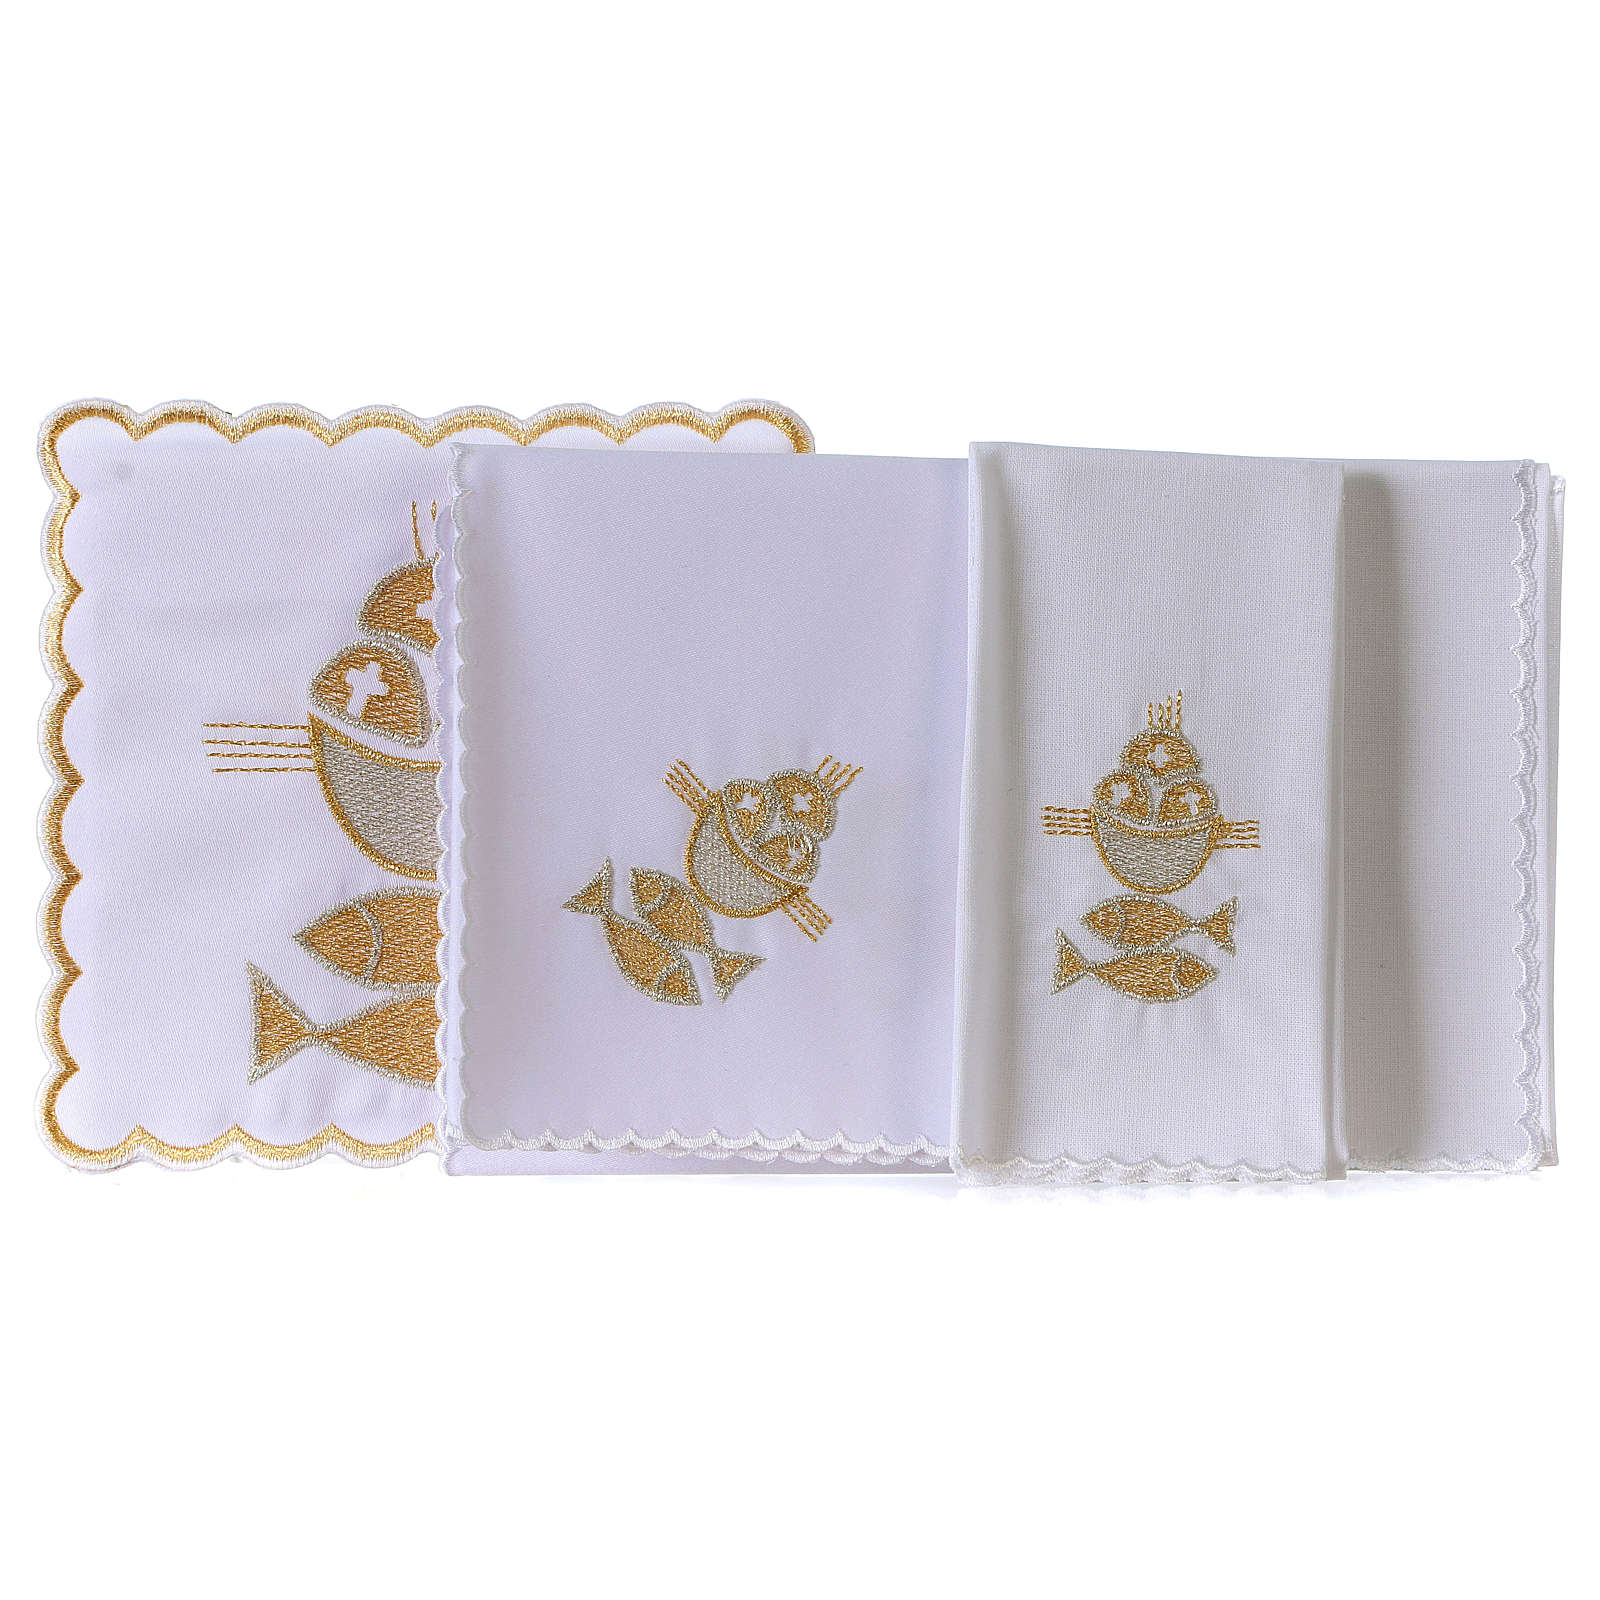 Altar linen set 4 pcs. loaves and fishes symbol 4